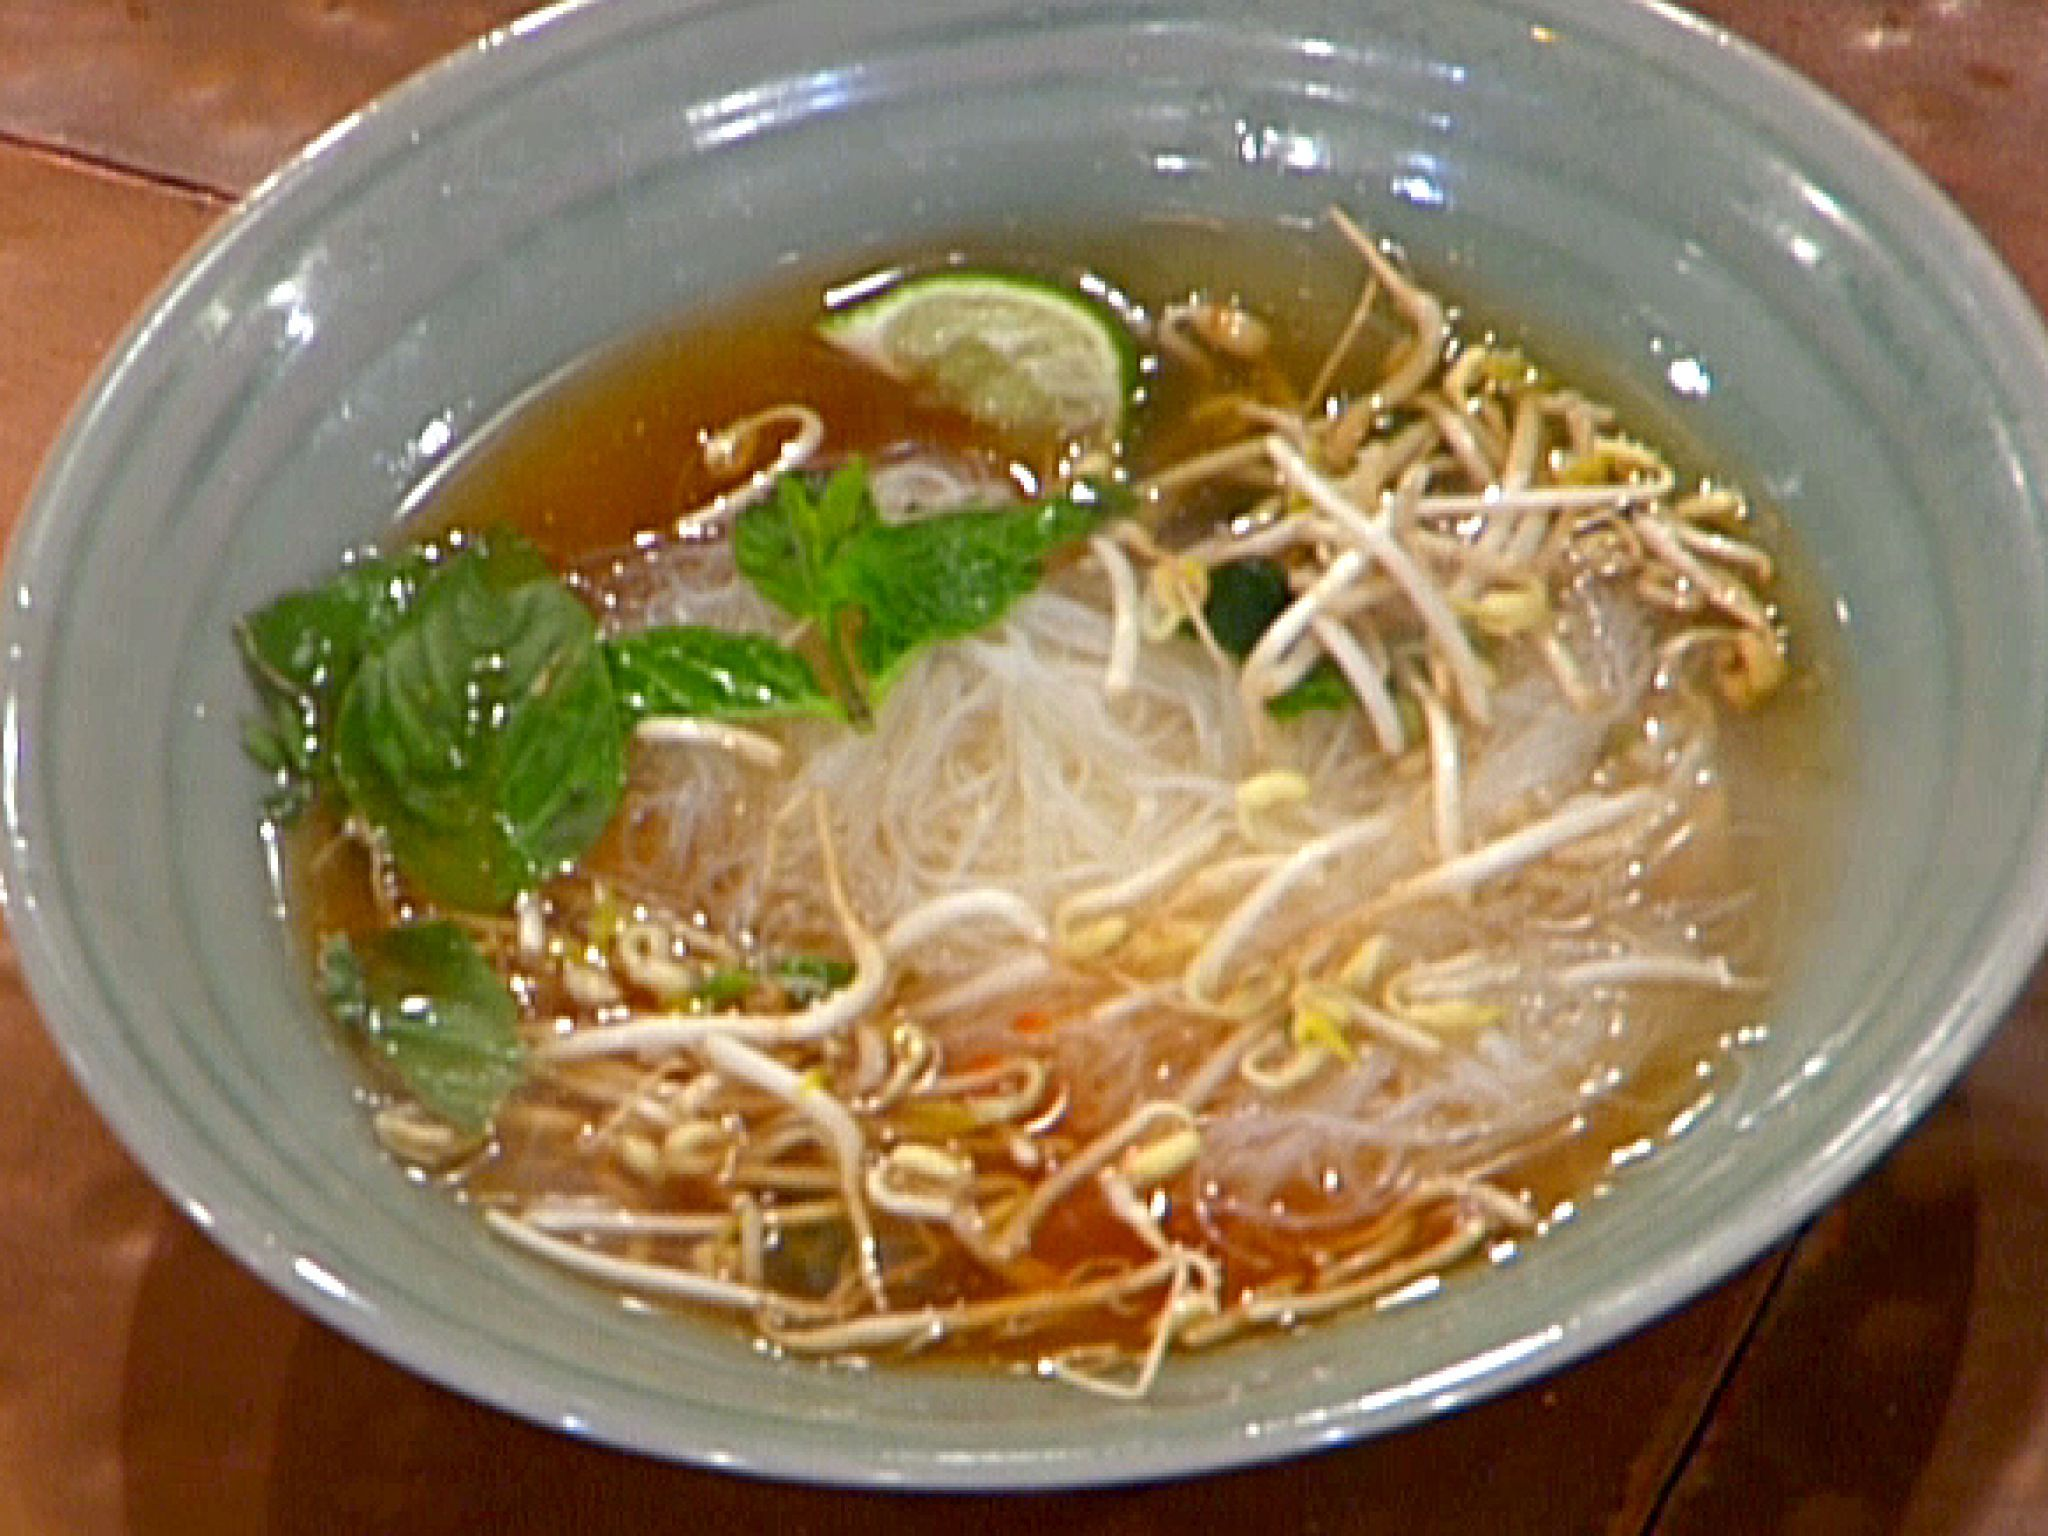 Pho ga vietnamese chicken noodle soup recipe from emeril lagasse pho ga vietnamese chicken noodle soup recipe from emeril lagasse via food network forumfinder Image collections